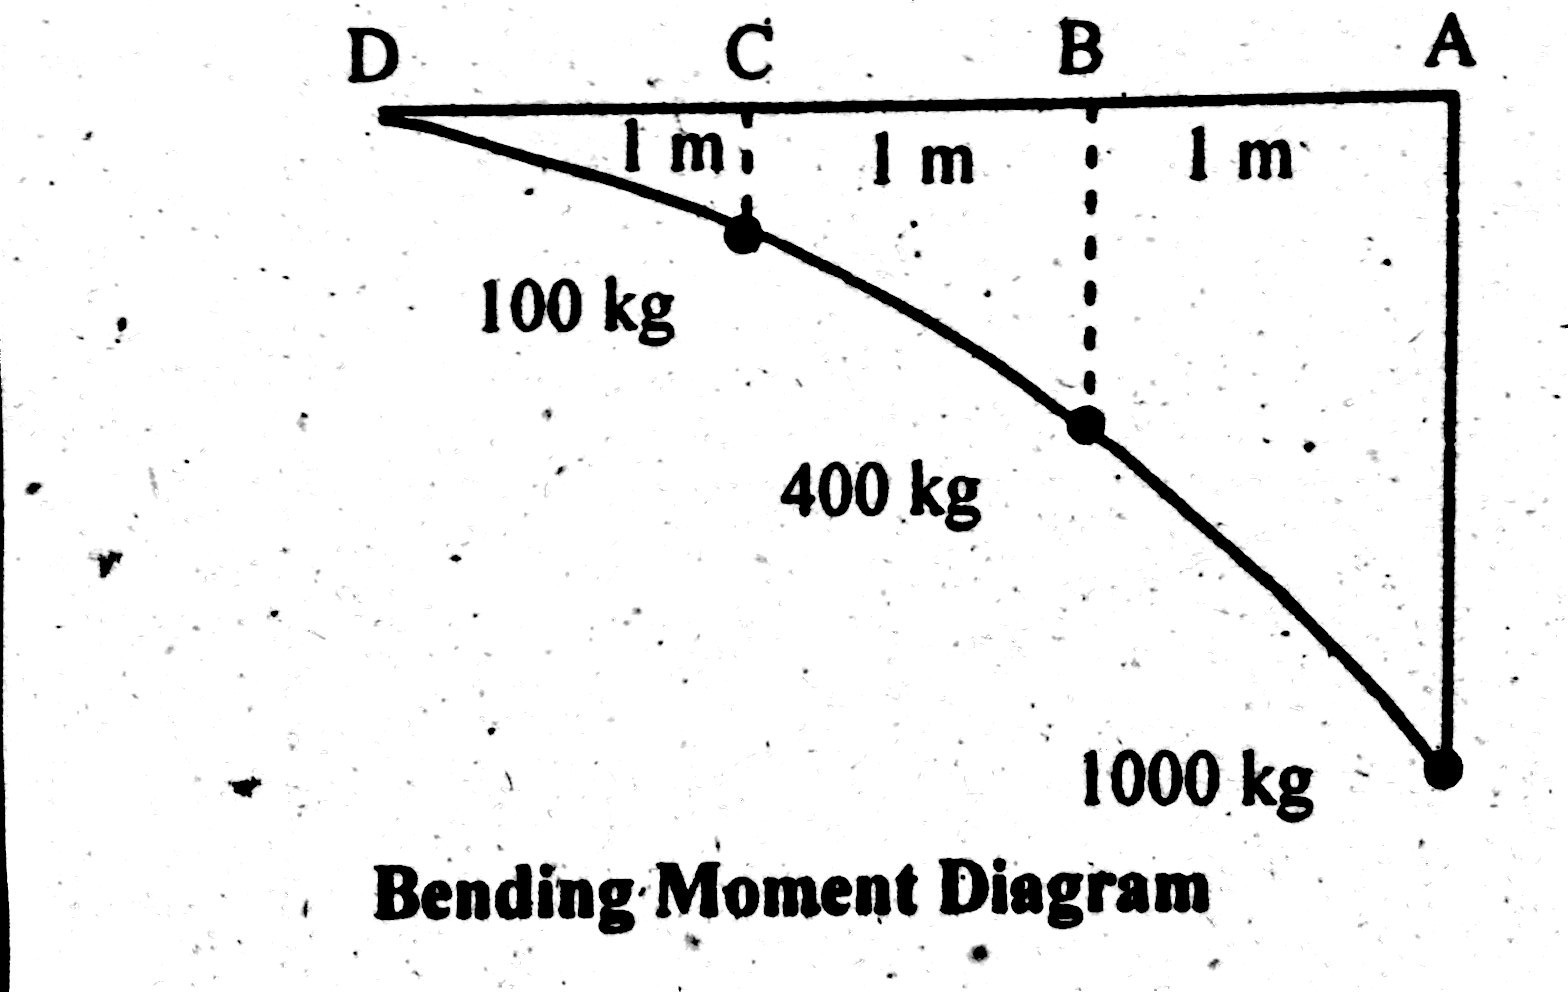 shear force bending moment diagram of cantilever beam examples rh engineeringintro com bending moment diagram cantilever beam with udl bending moment diagram for propped cantilever beam